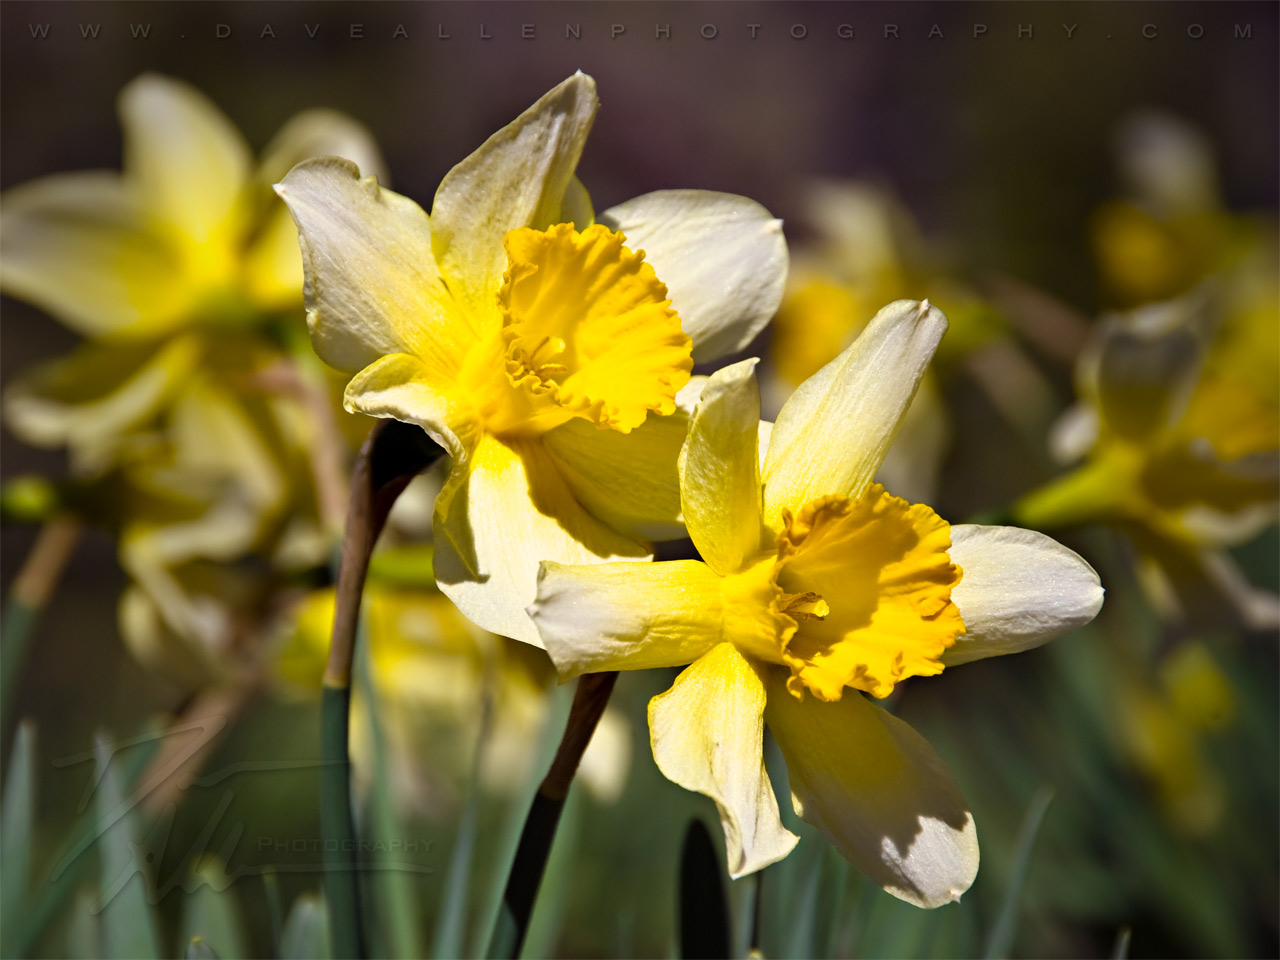 Early Spring Twin Daffodils   Flower Wallpaper Image 1280x960